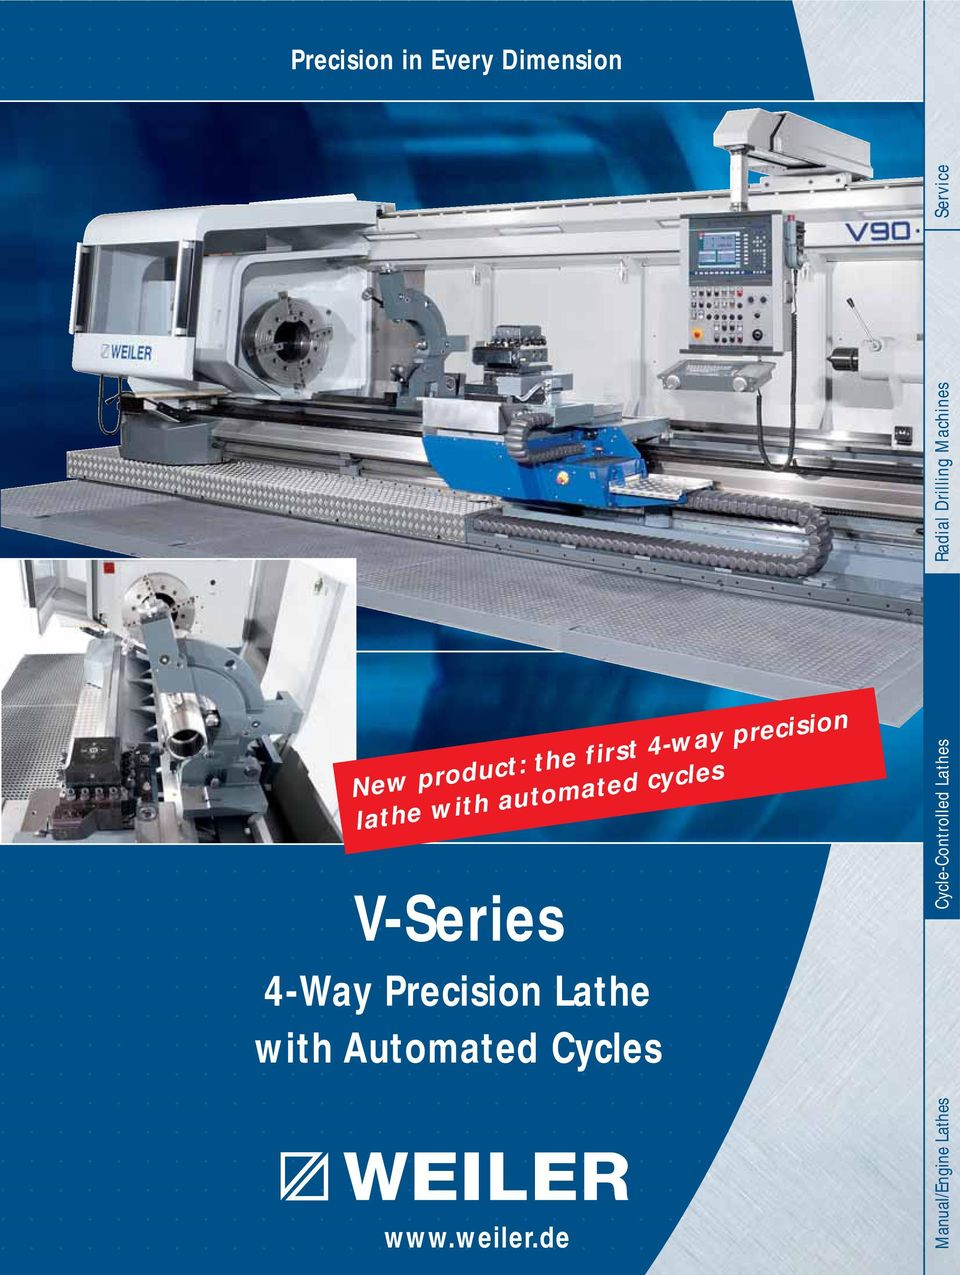 Precision Lathe with Automated Cycles www.weiler.